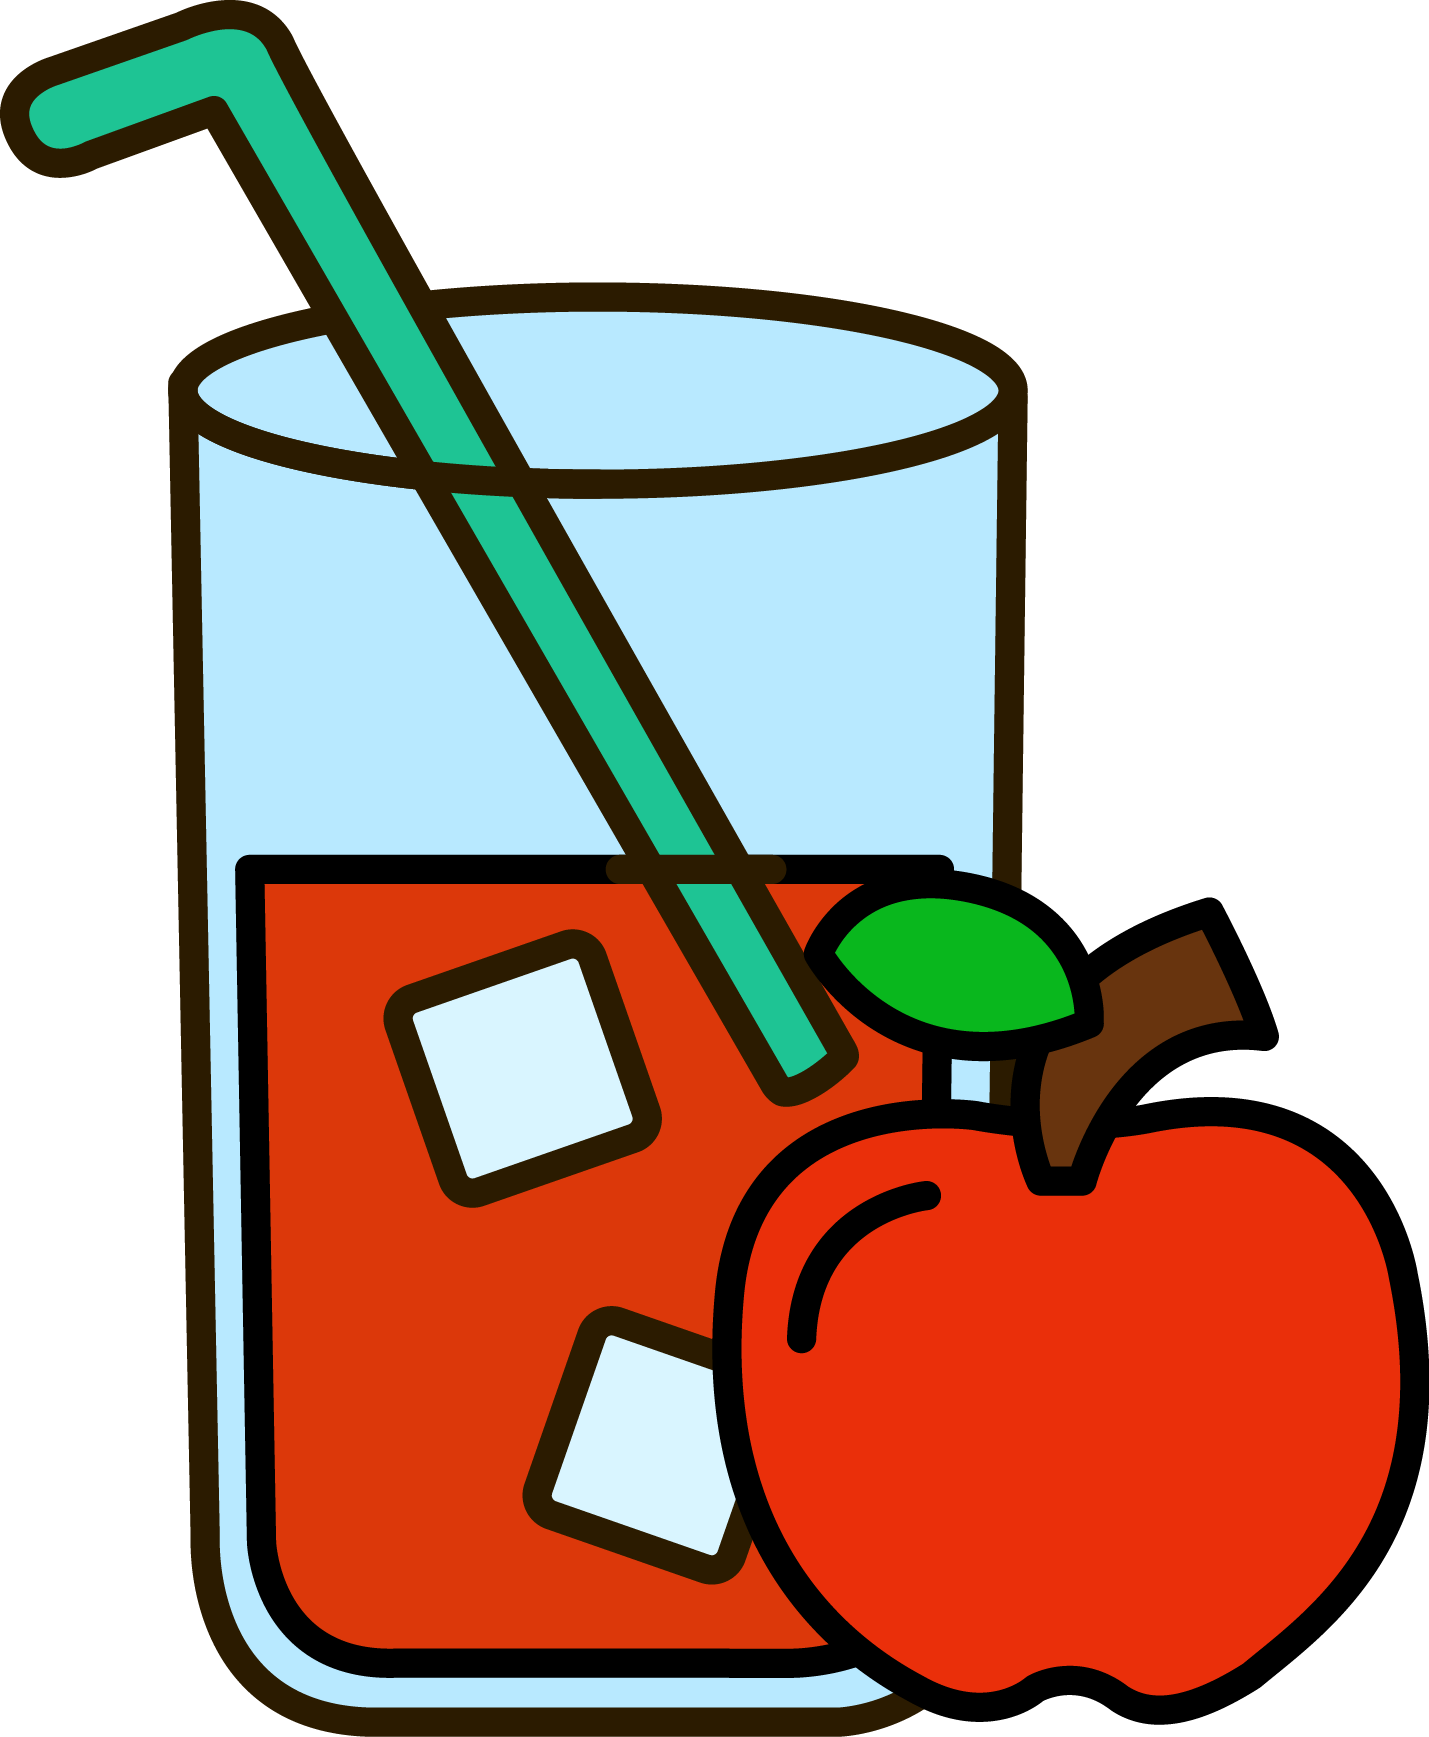 Apple juice clipart image library download Trinetra - About: Free Indian Symbols, Signs, Patterns, Graphics ... image library download